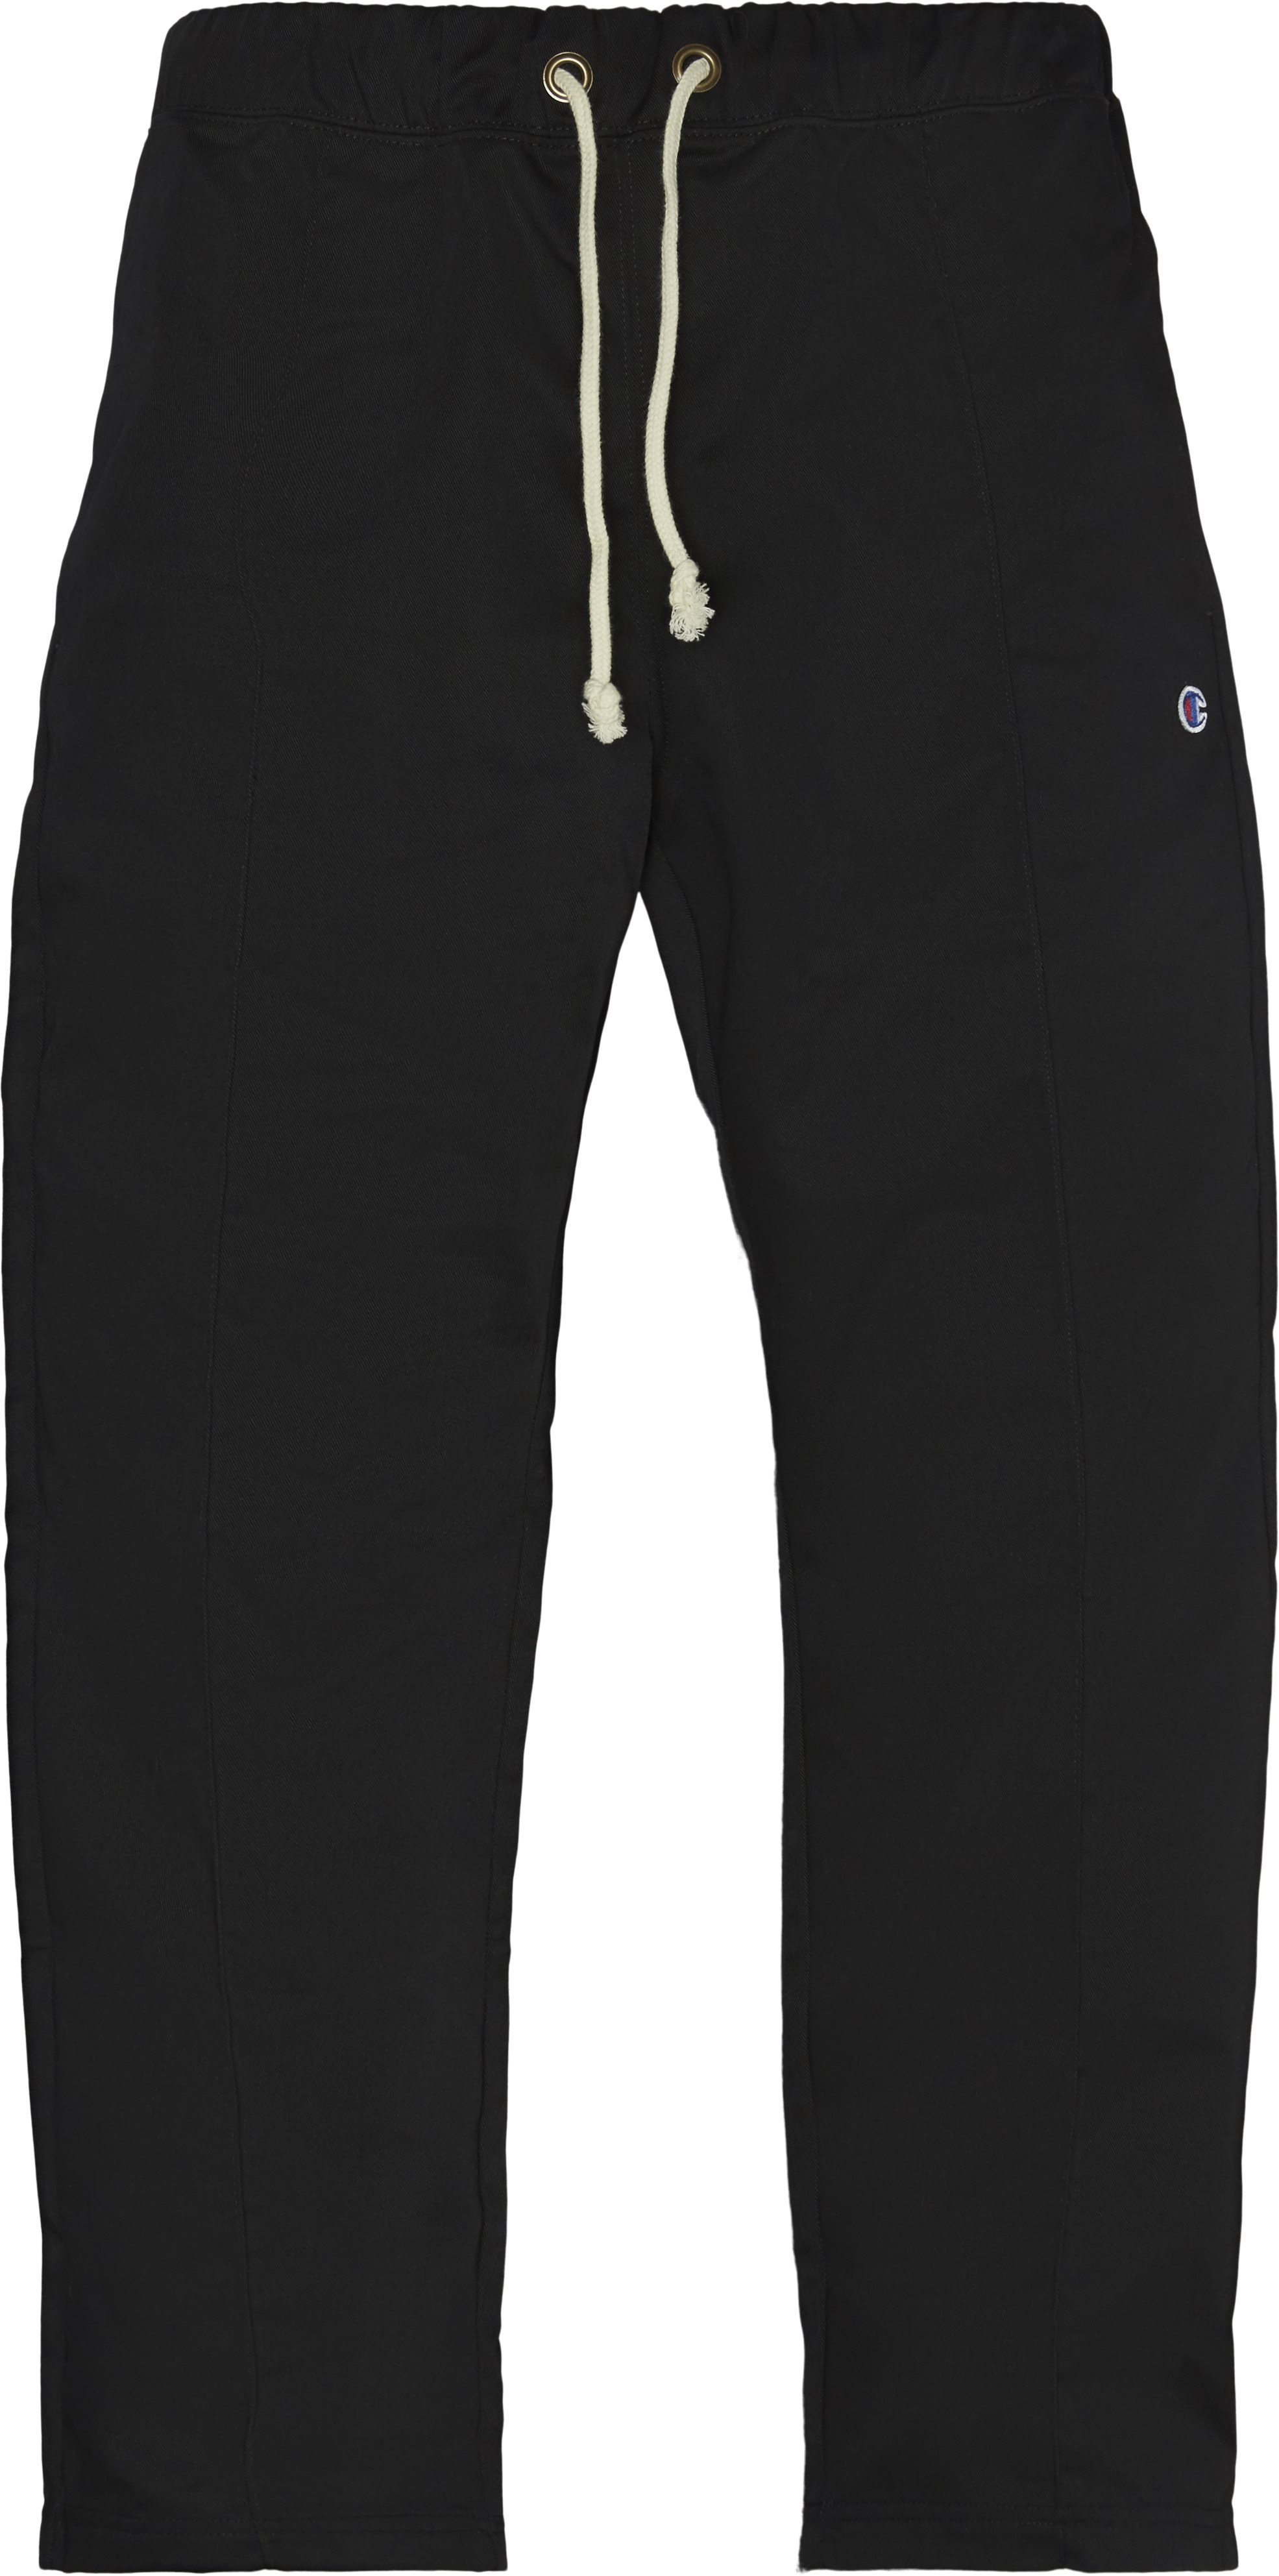 Poly Woven Pant - Bukser - Straight fit - Sort